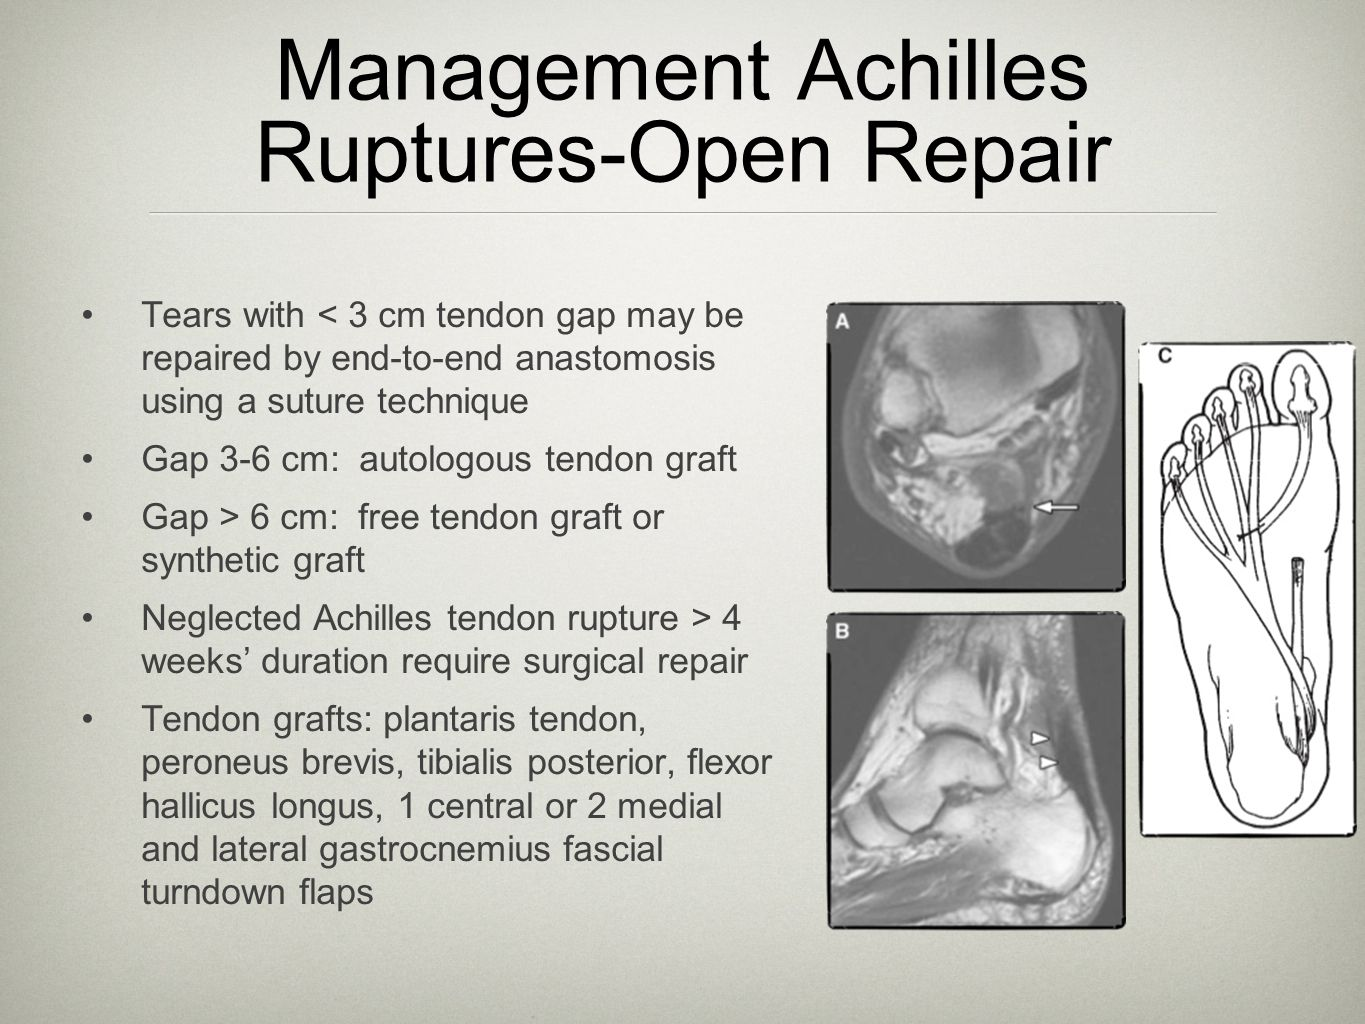 Management Achilles Ruptures-Open Repair Tears with < 3 cm tendon gap may be repaired by end-to-end anastomosis using a suture technique Gap 3-6 cm: a